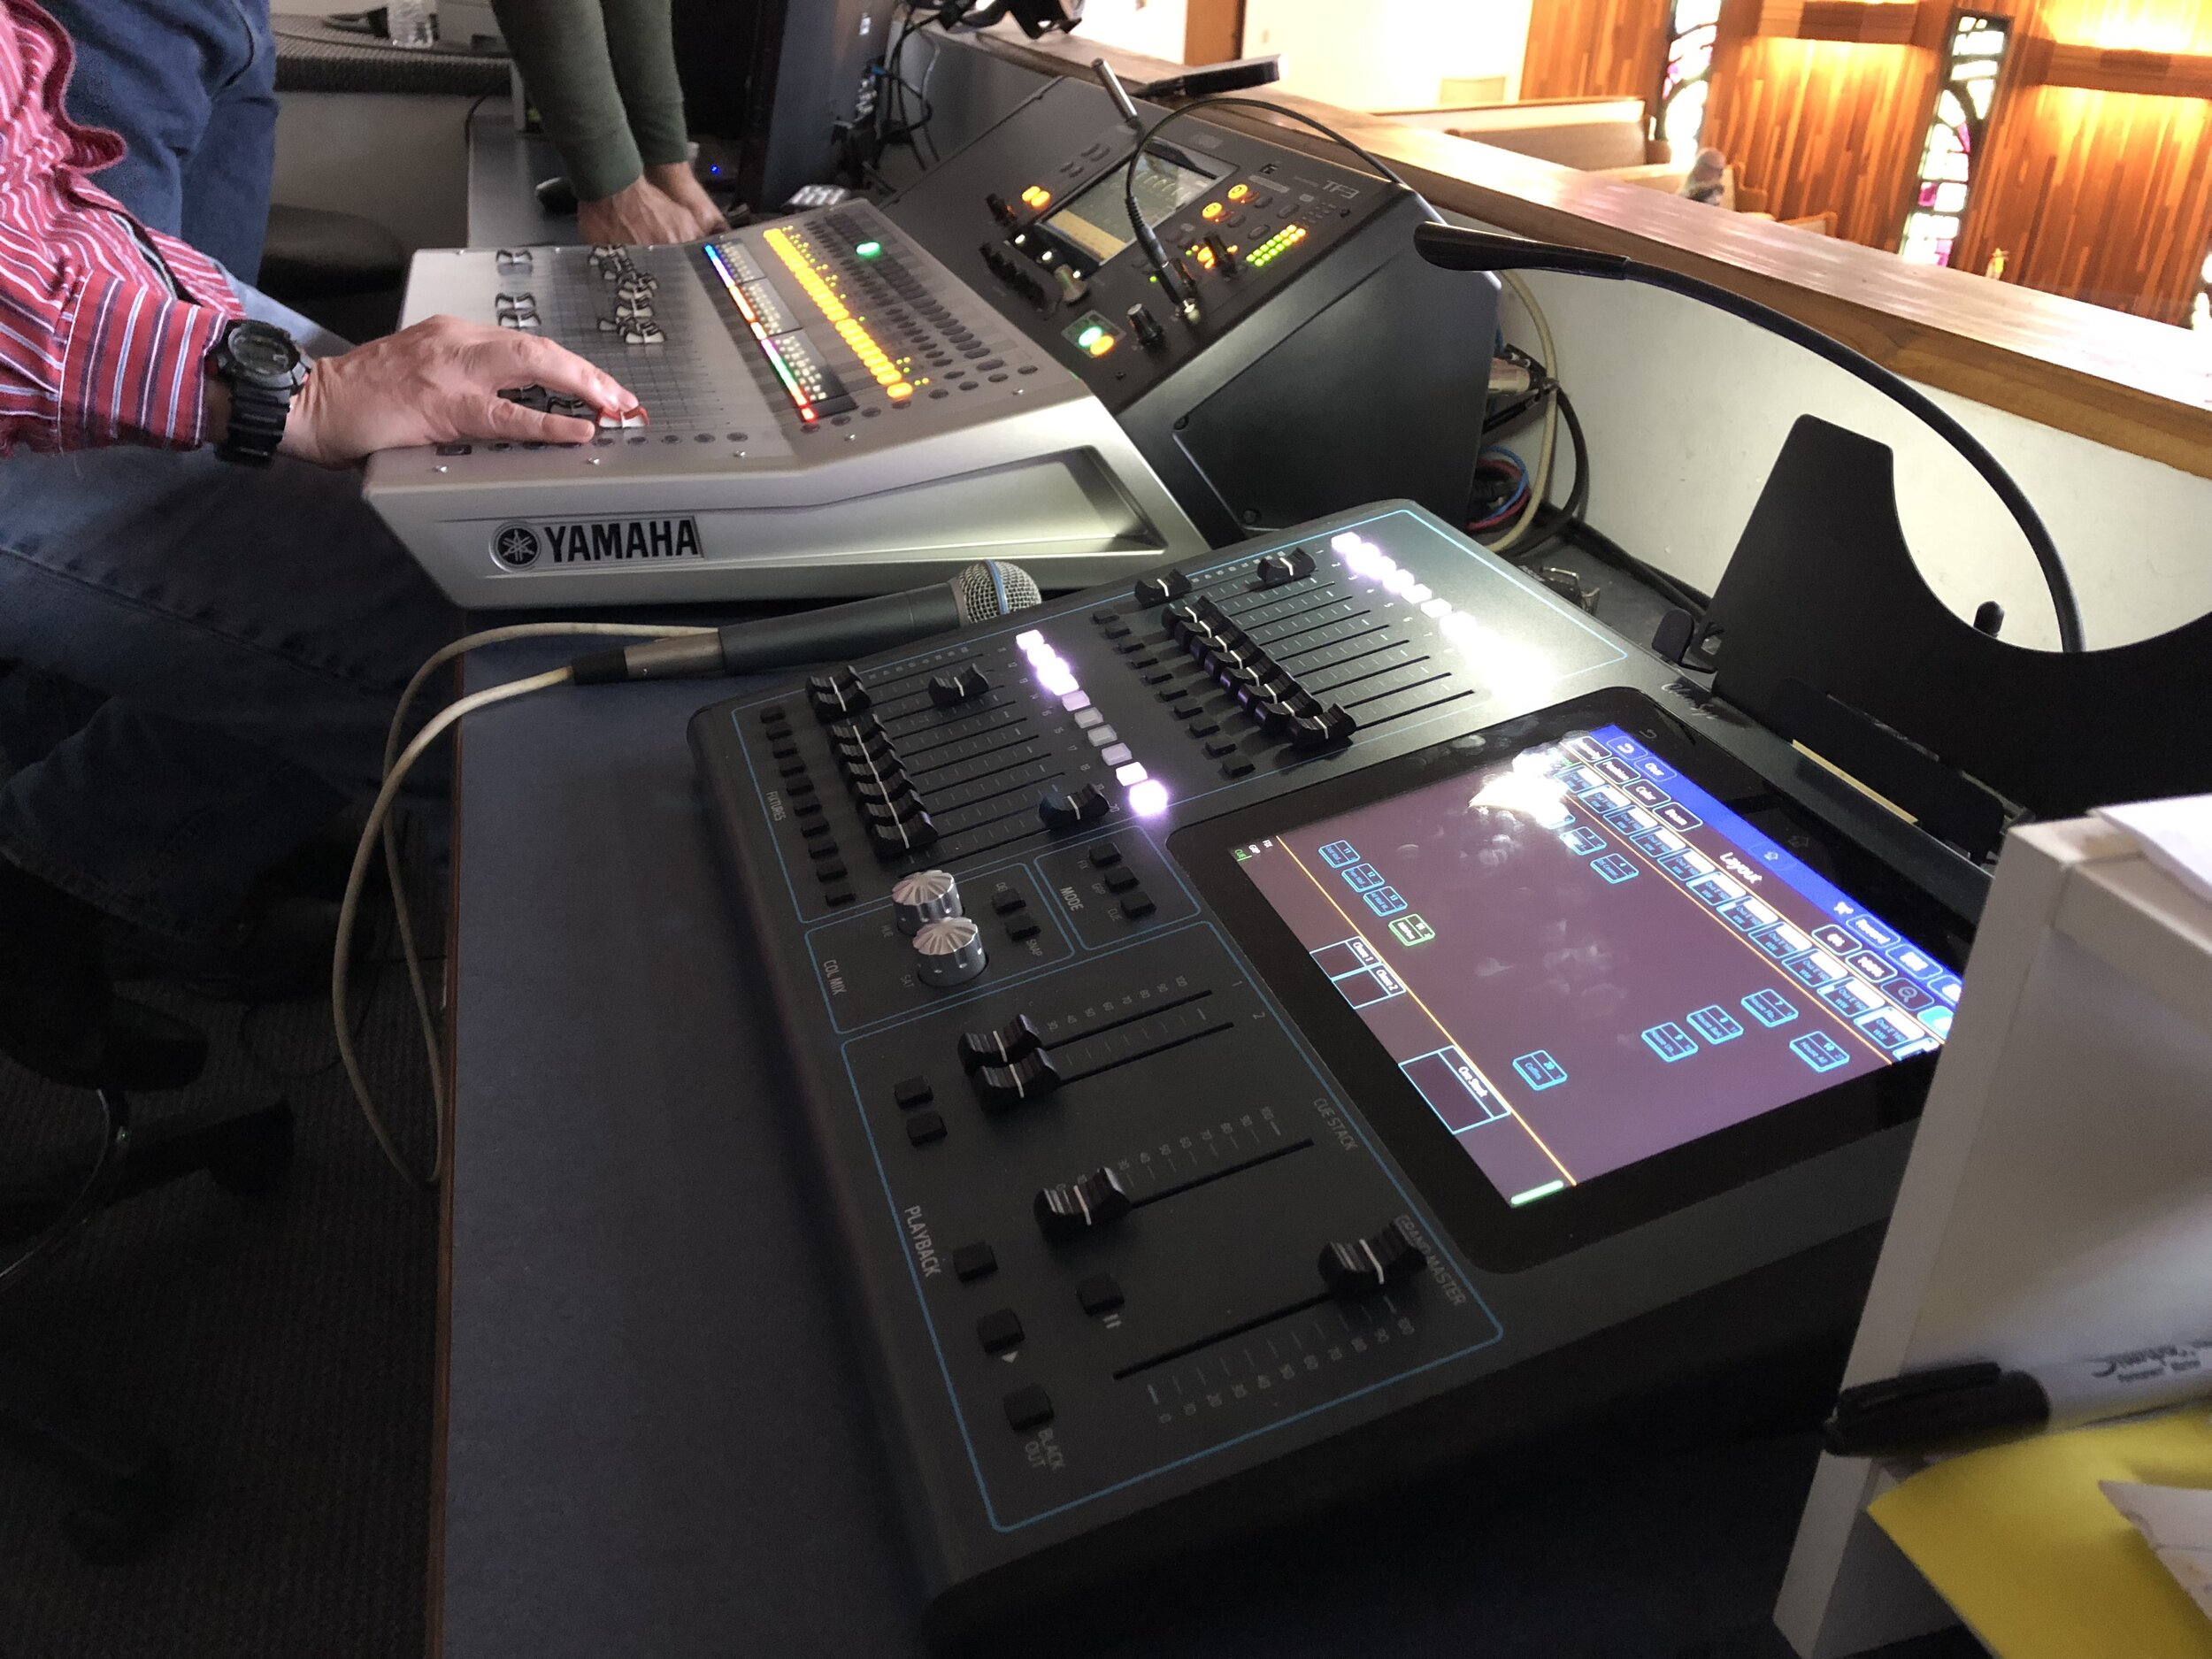 A Chamsys QuickQ10 and Yamaha TF-3 bring this tech booth into the 21st century.